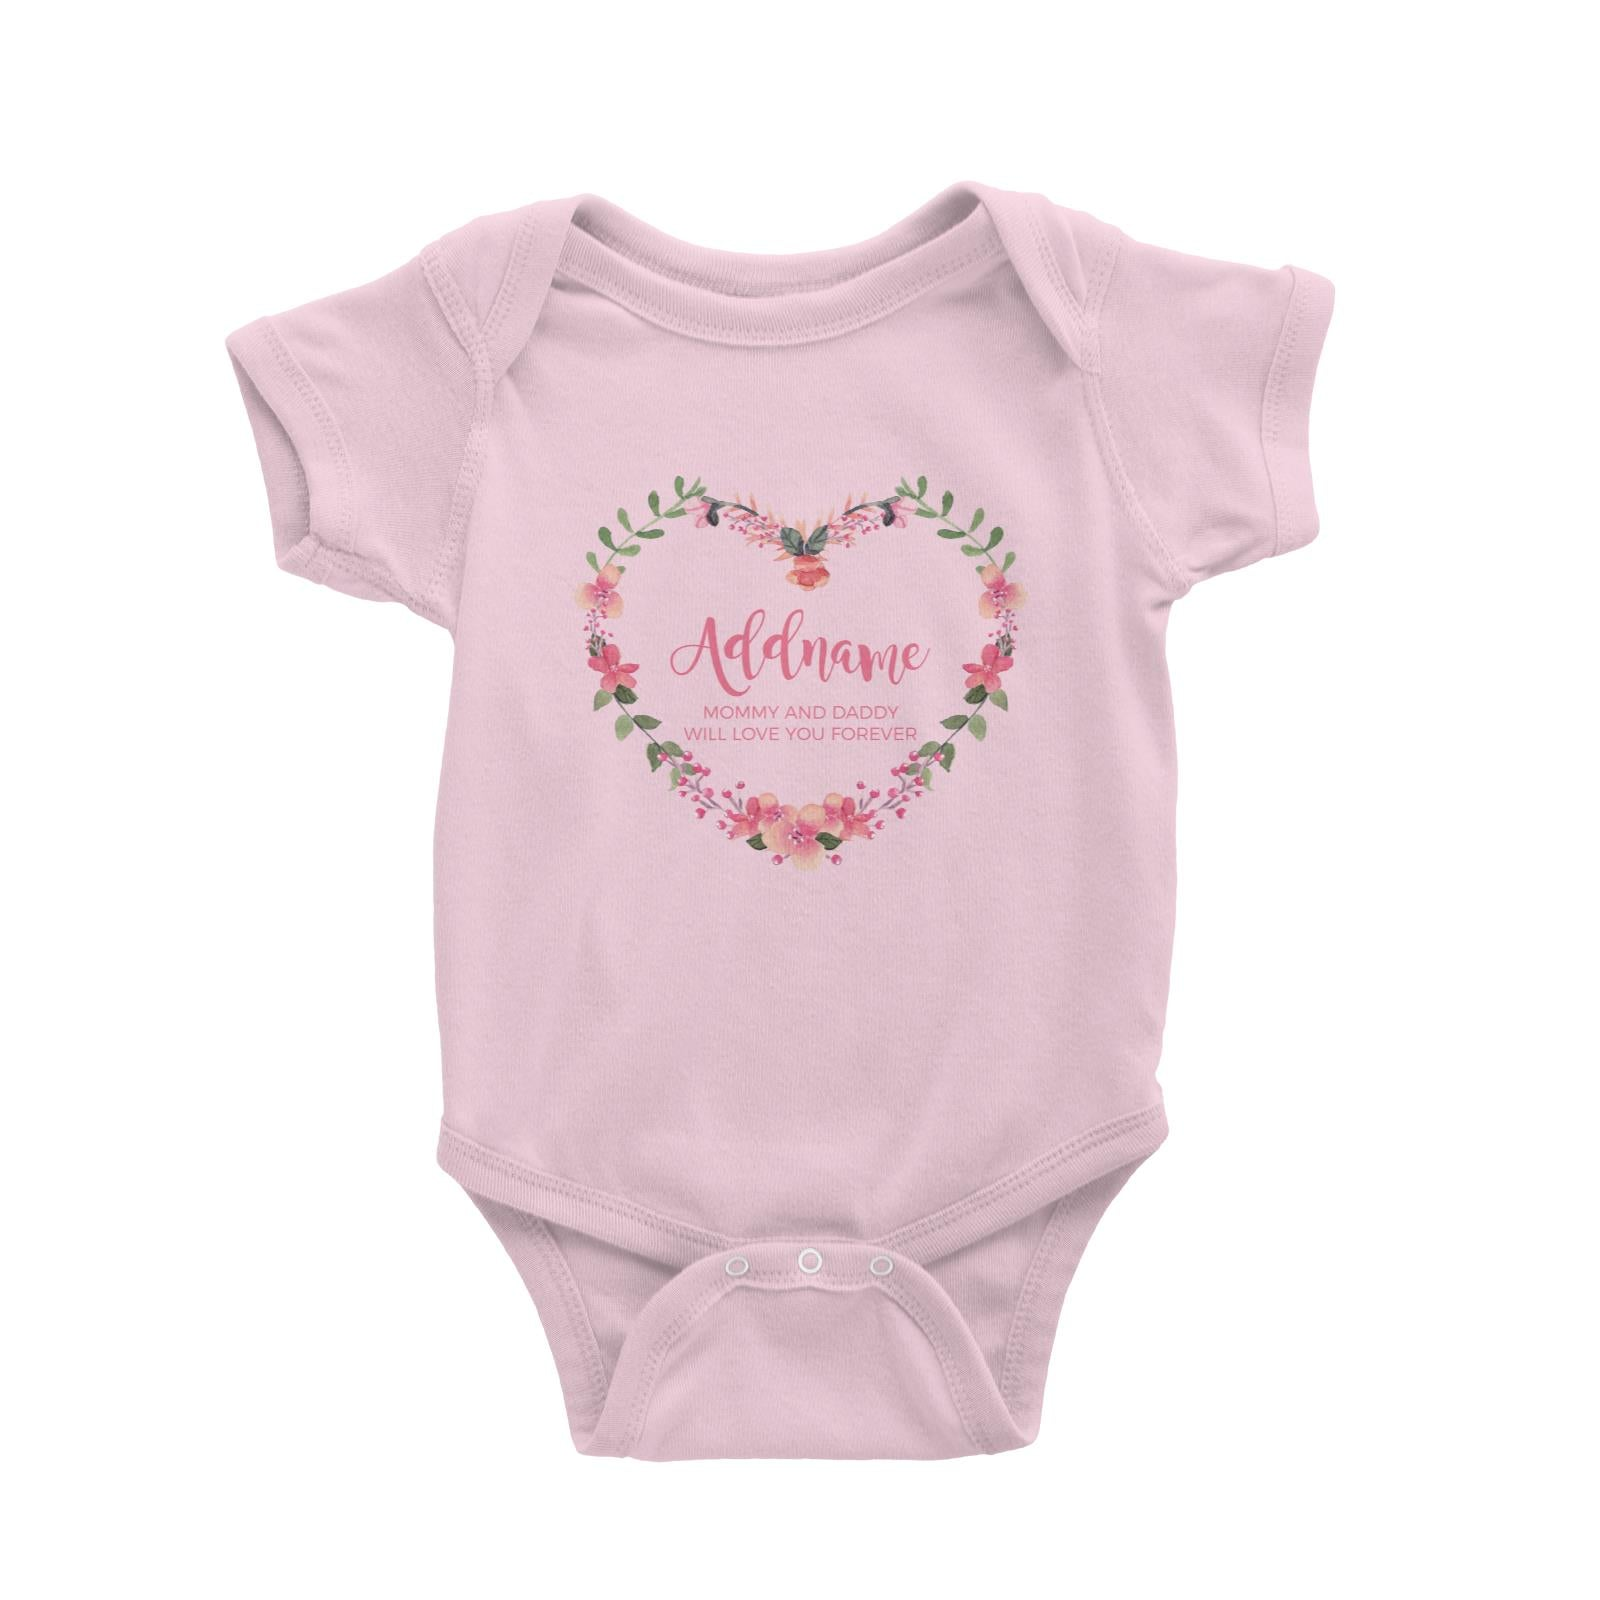 Pink Heart Shaped Flower Wreath Personalizable with Name and Text Baby Romper